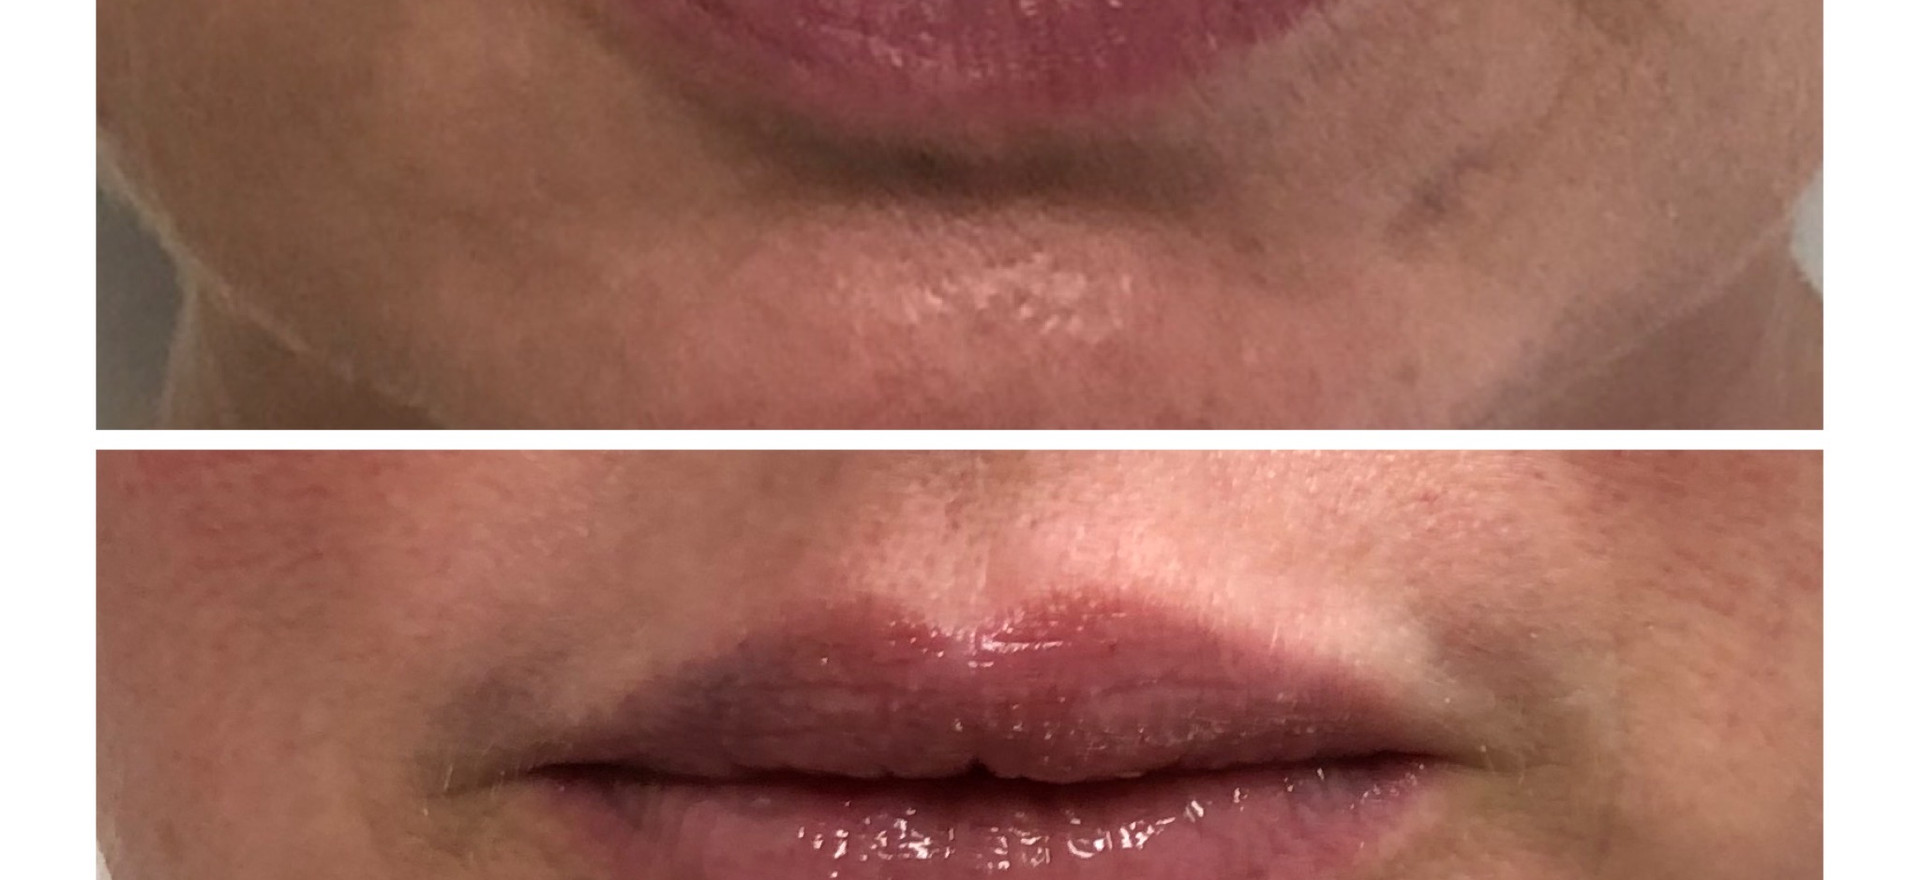 One Syringe of Soft Lip Filler for plump lips with a natural looking key hole effect.